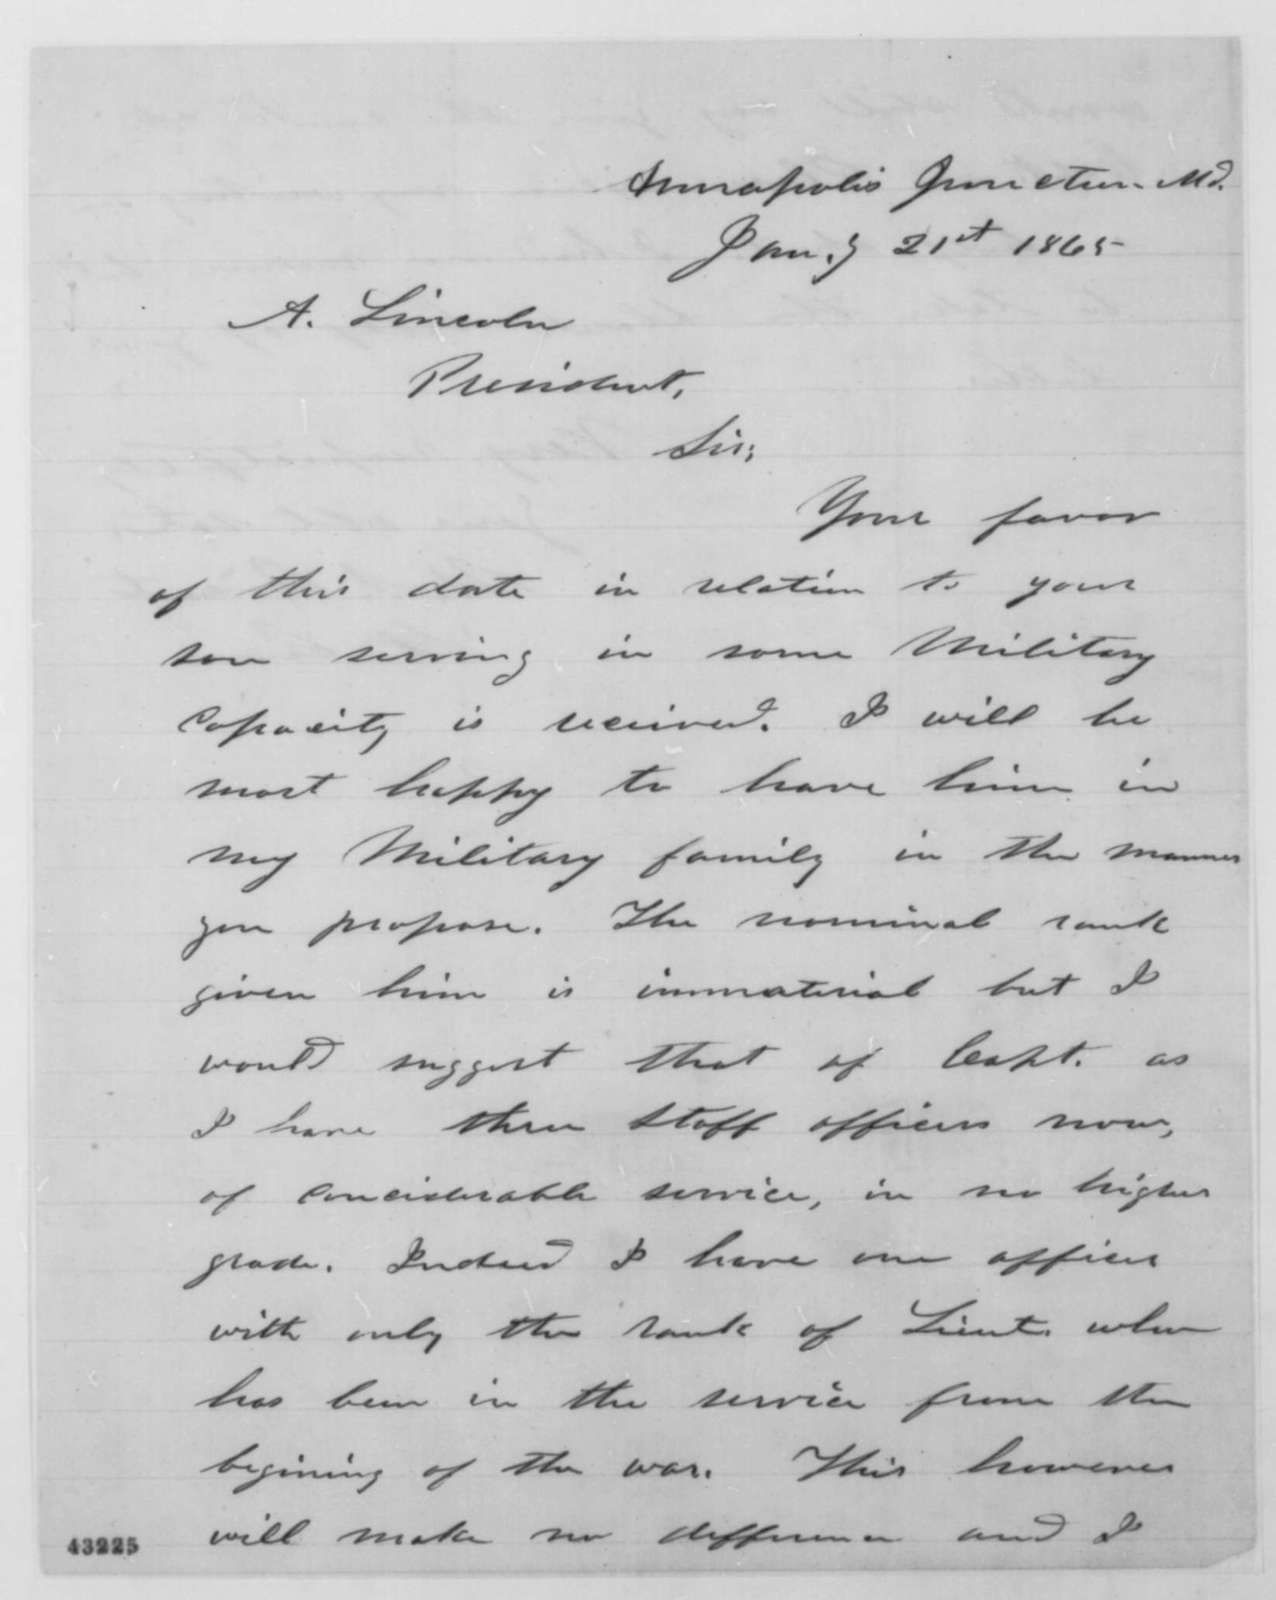 Ulysses S. Grant to Abraham Lincoln, Saturday, January 21, 1865  (Military appointment for Robert Todd Lincoln)